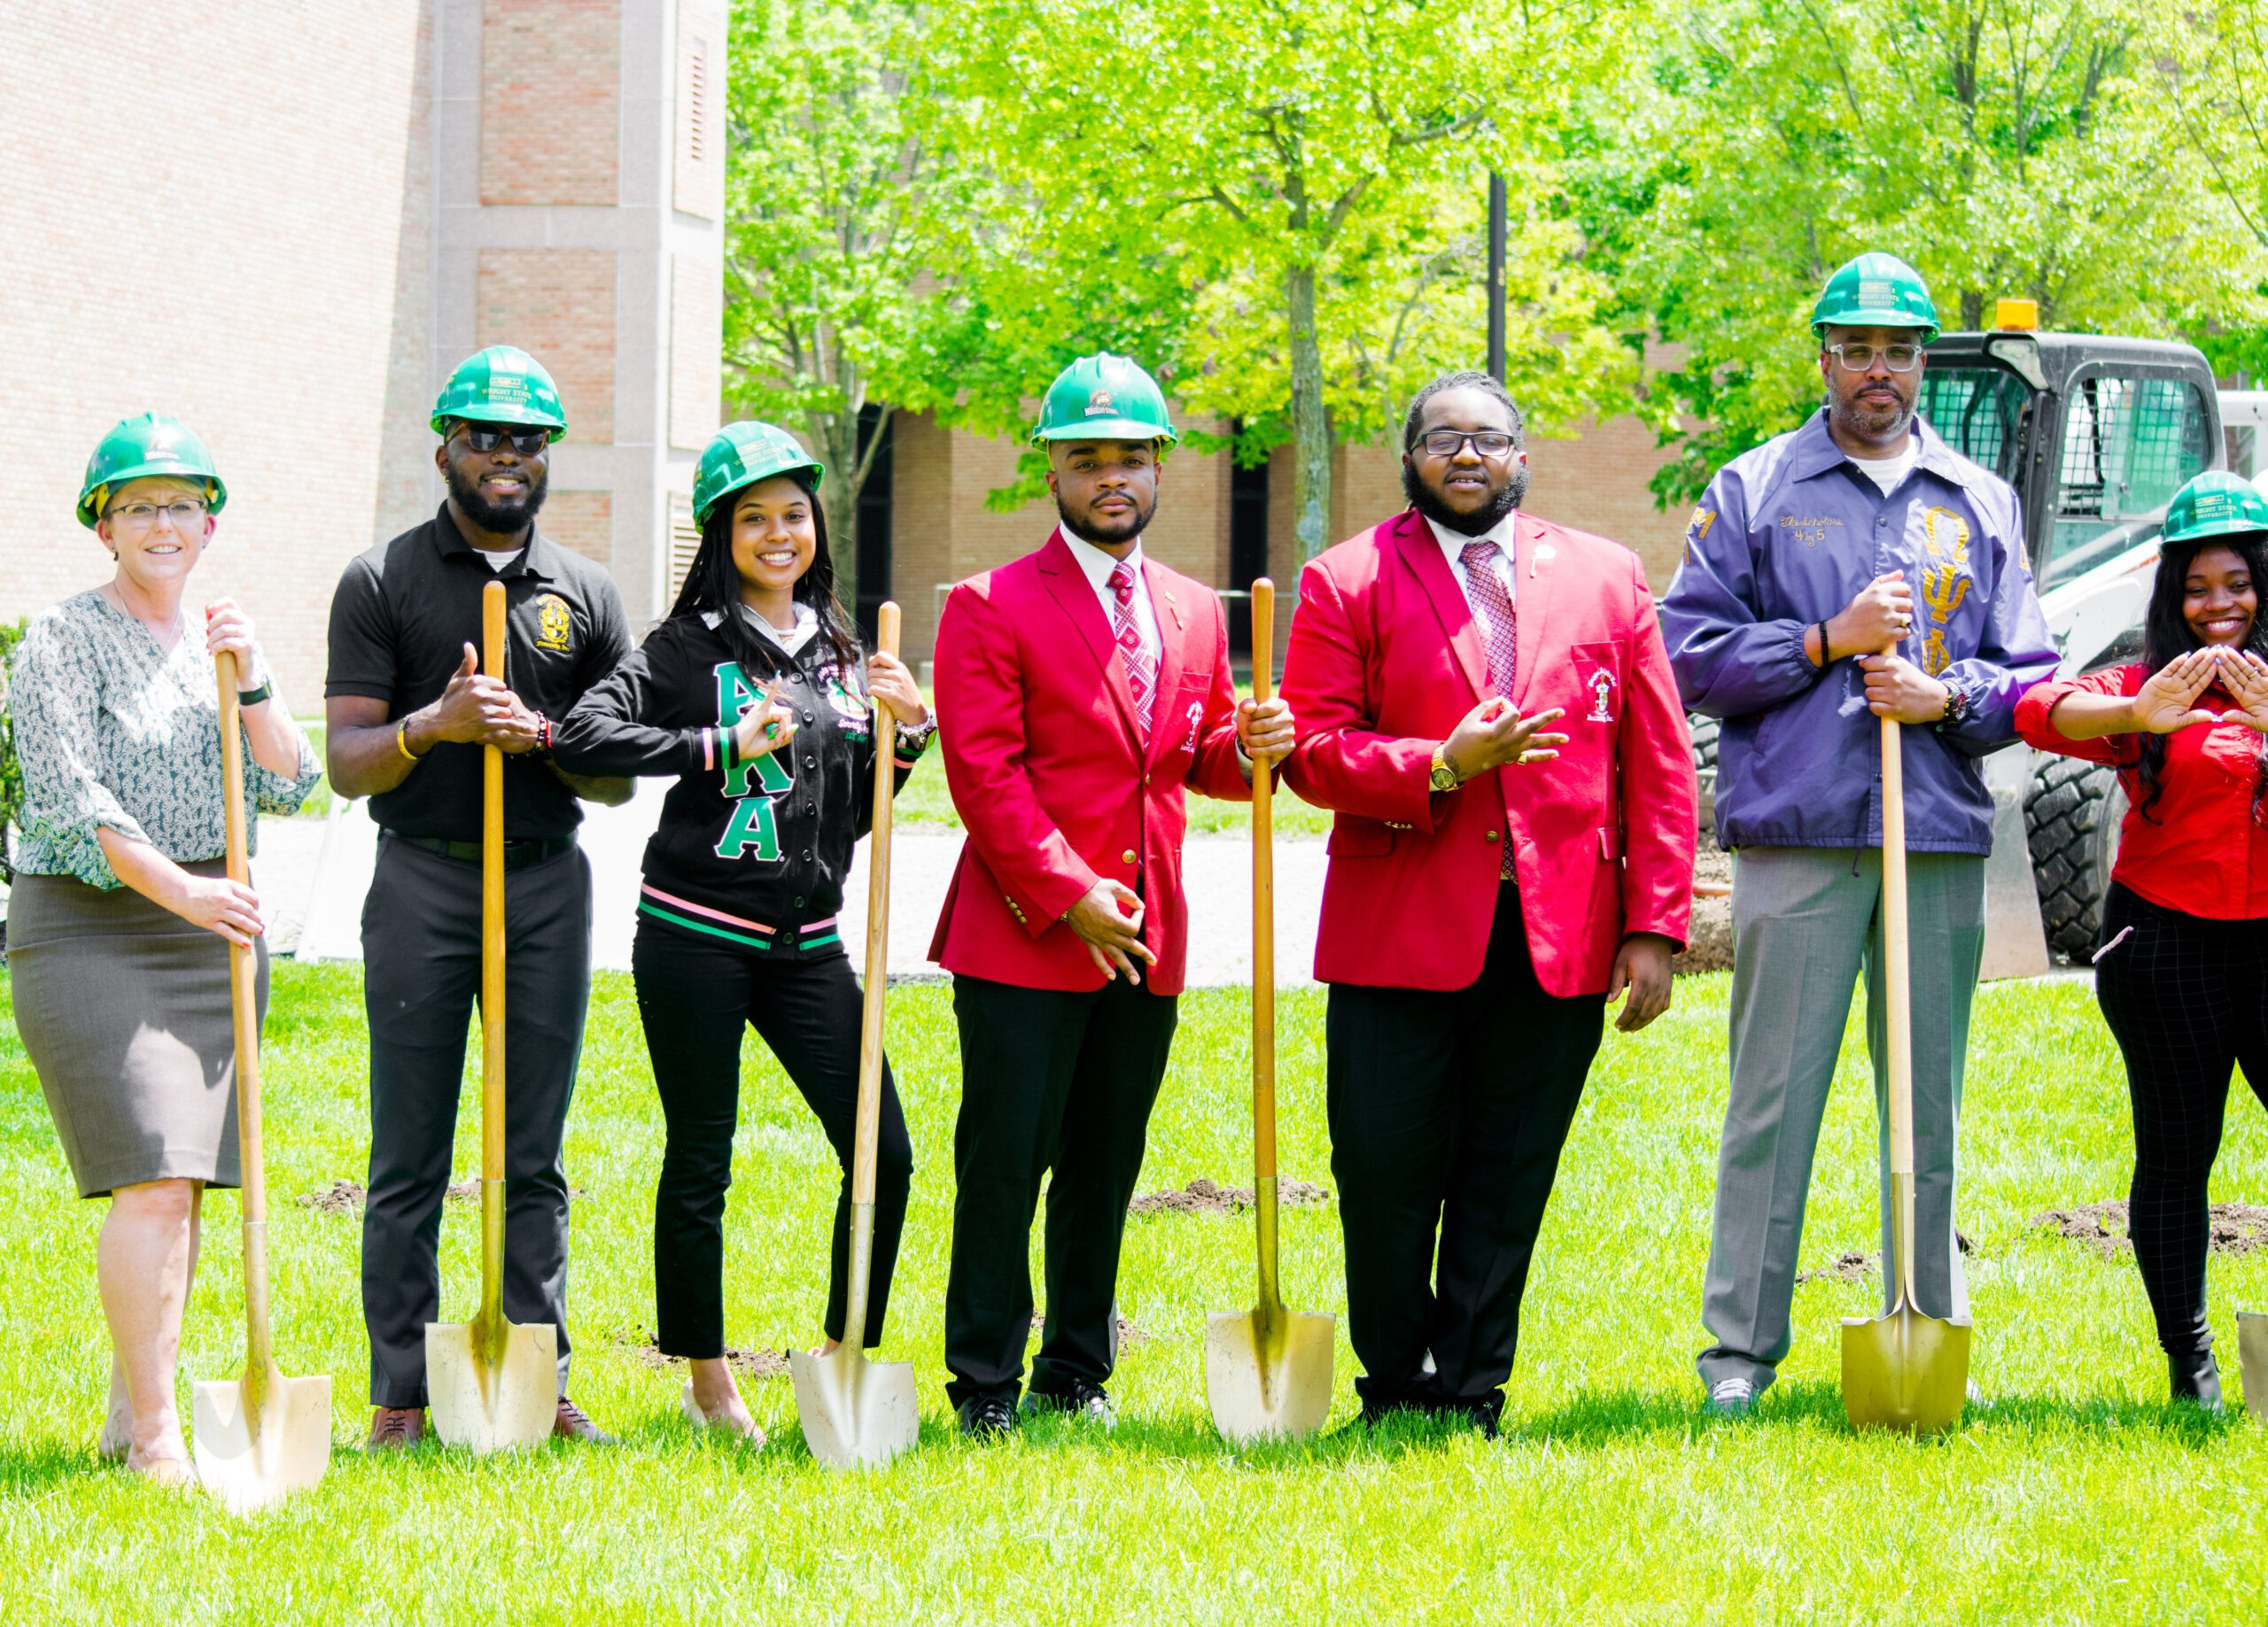 Ground breaking ceremony for NPHC Plots at Wright State University.